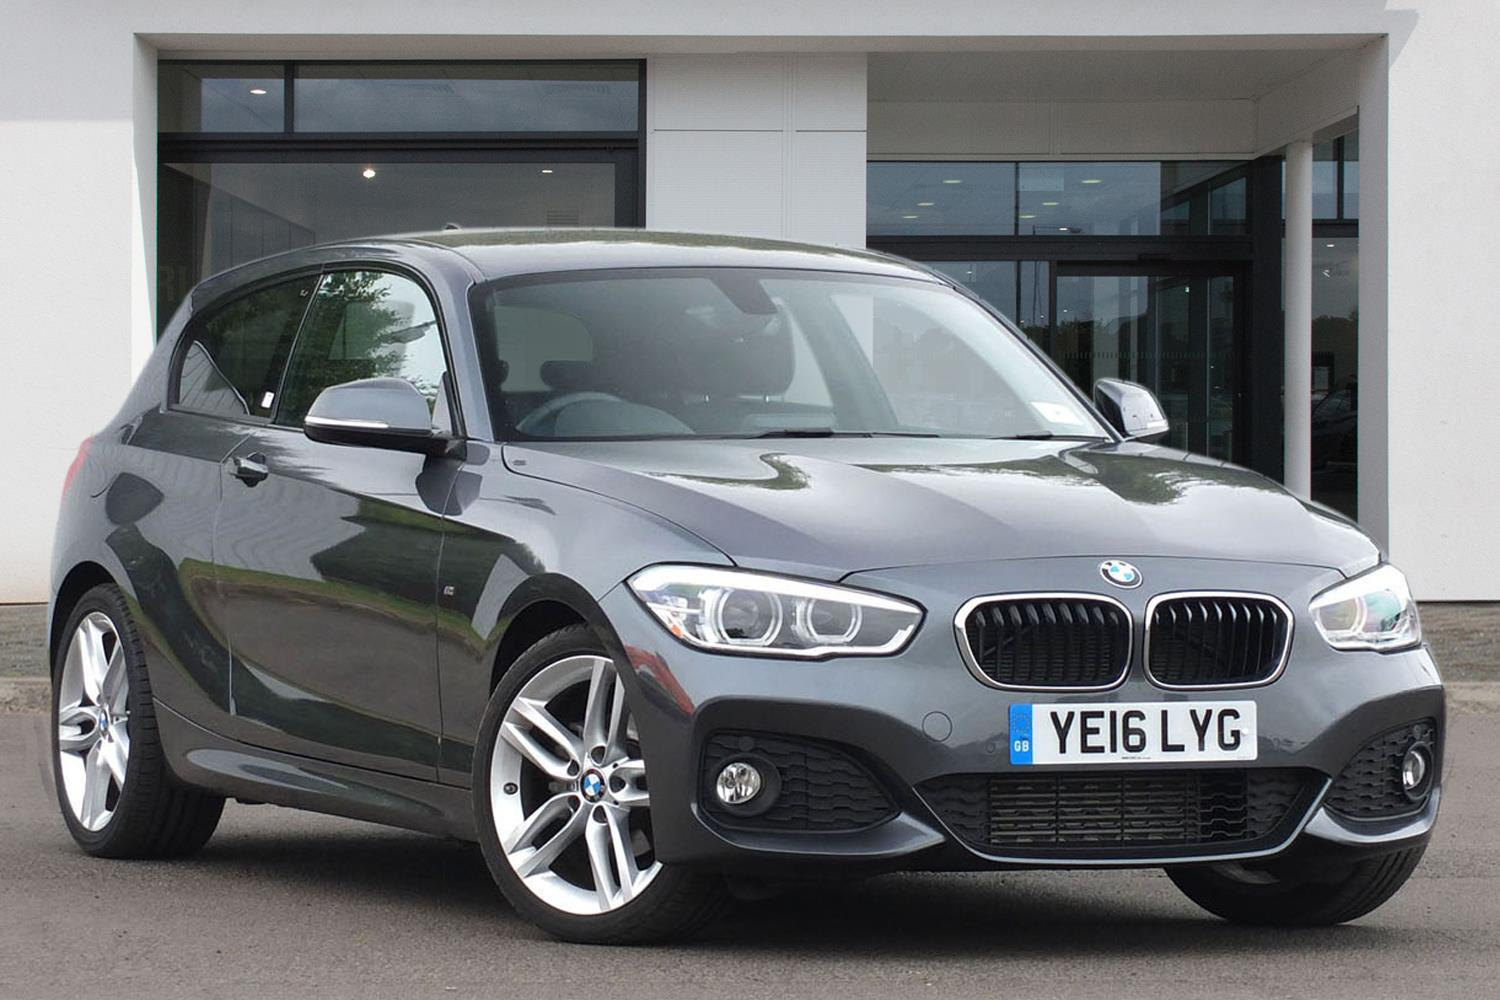 BMW 1 Series 3-door Sports Hatch YE16LYG - Image 2